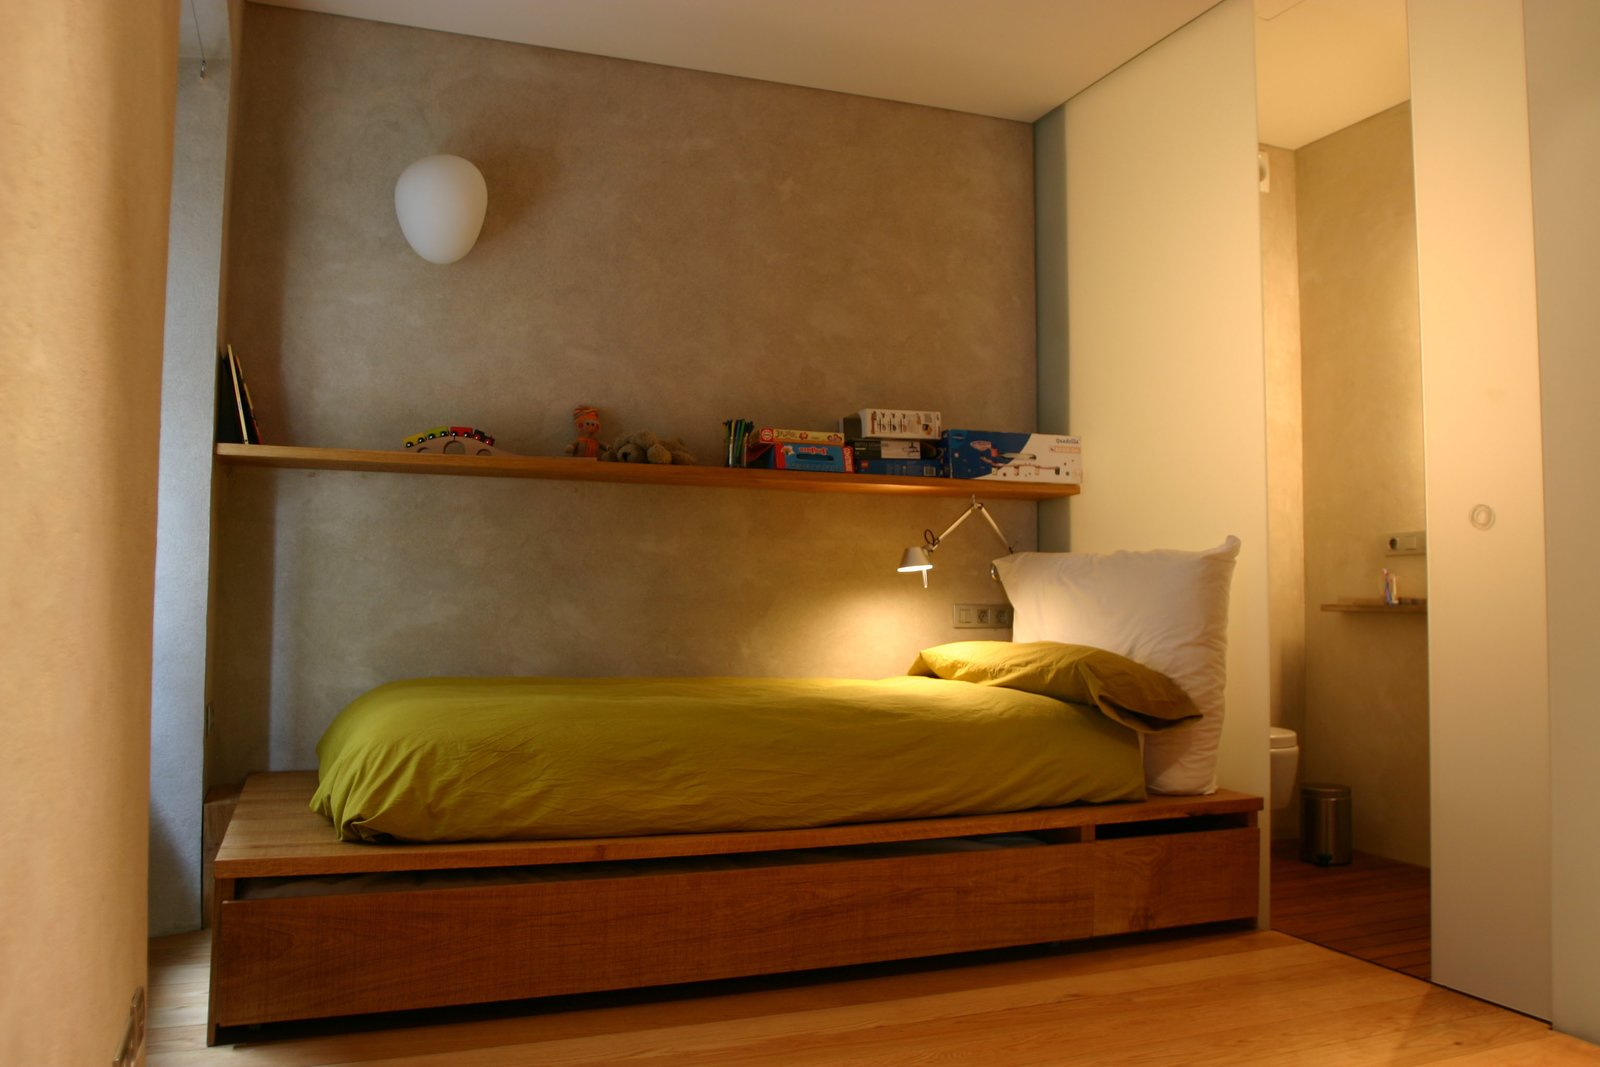 Bedroom, Storage, Bed, Shelves, Wall Lighting, and Medium Hardwood Floor The children's bedroom with a pullout storage area.  Photo 15 of 15 in A Spanish Architect Transforms a Medieval Townhouse Into a Stunning Rental